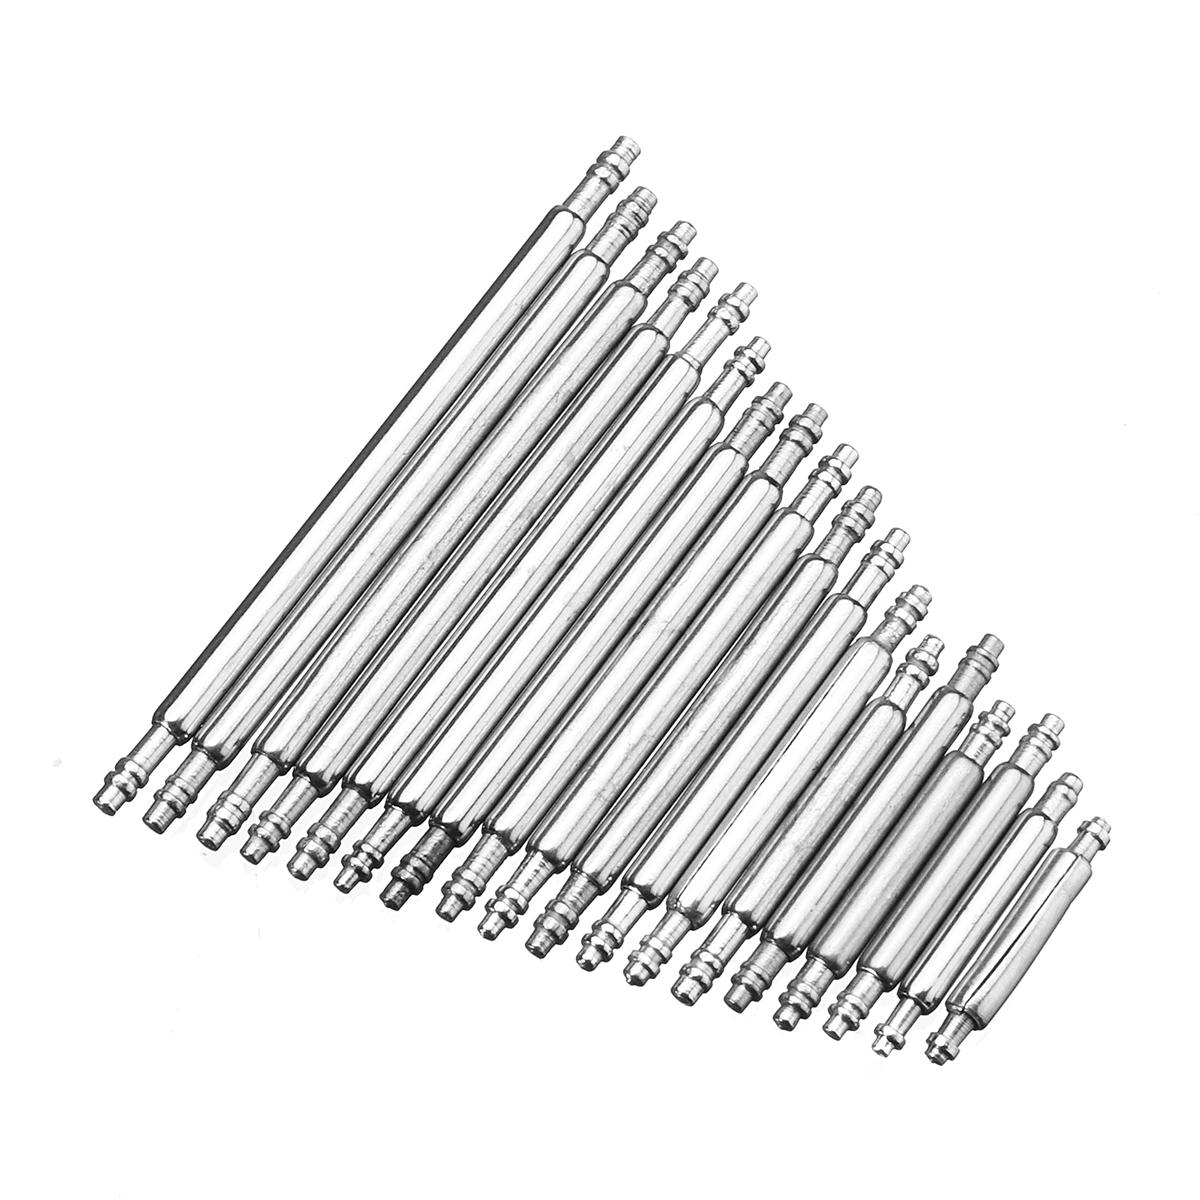 270pcs 8 25mm Watch Band Spring Bar Strap Link Pins With Remover Removal Repair Tool Sale